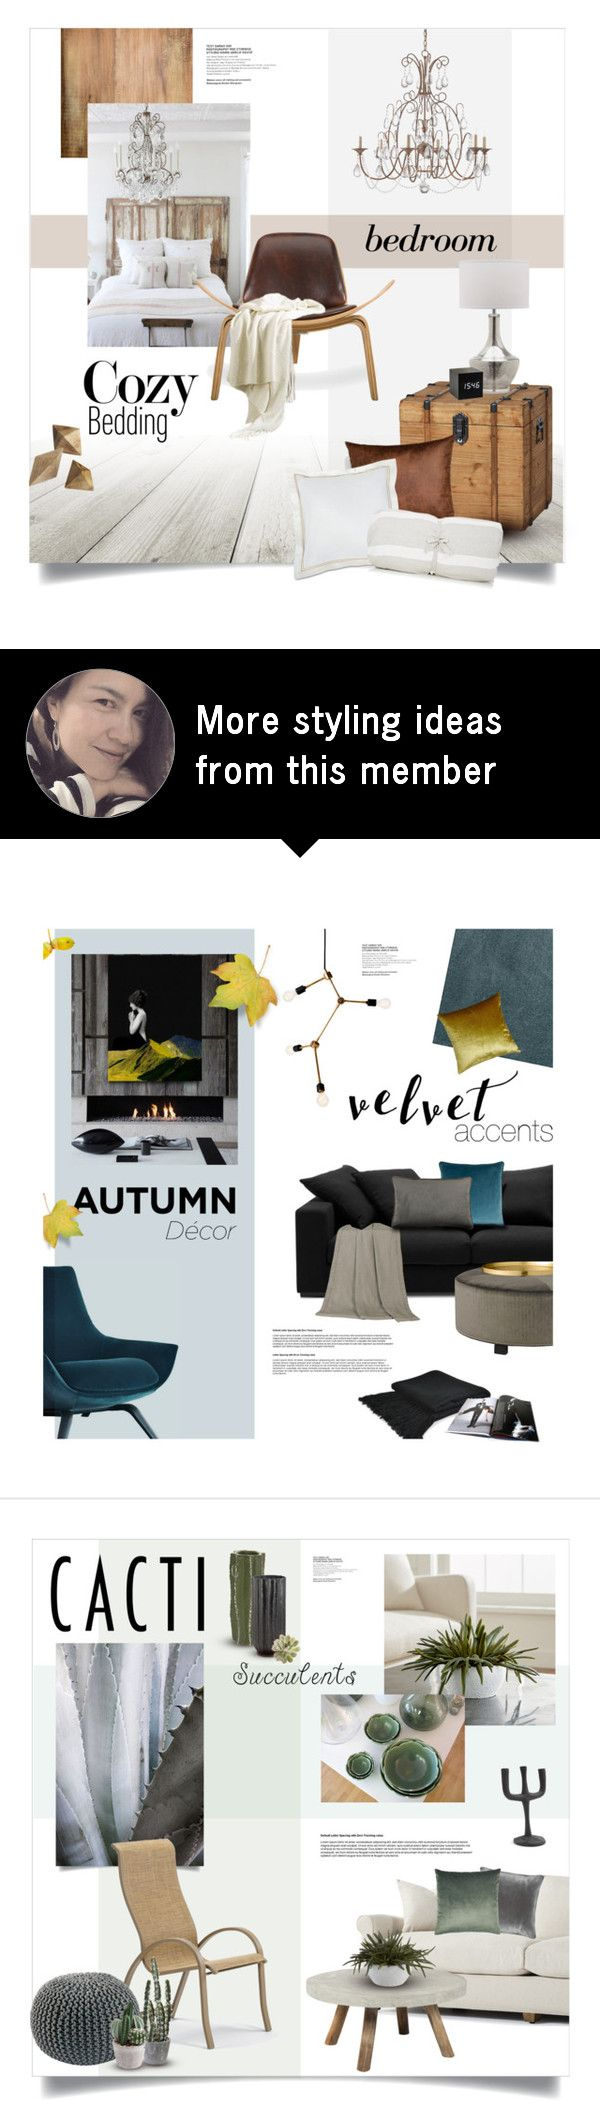 """""""Cozy Bedroom"""" by magdafunk on Polyvore featuring interior, interiors, interior design, home, home decor, interior decorating, Burke Decor, Currey & Company, Hedgehouse and CB2"""